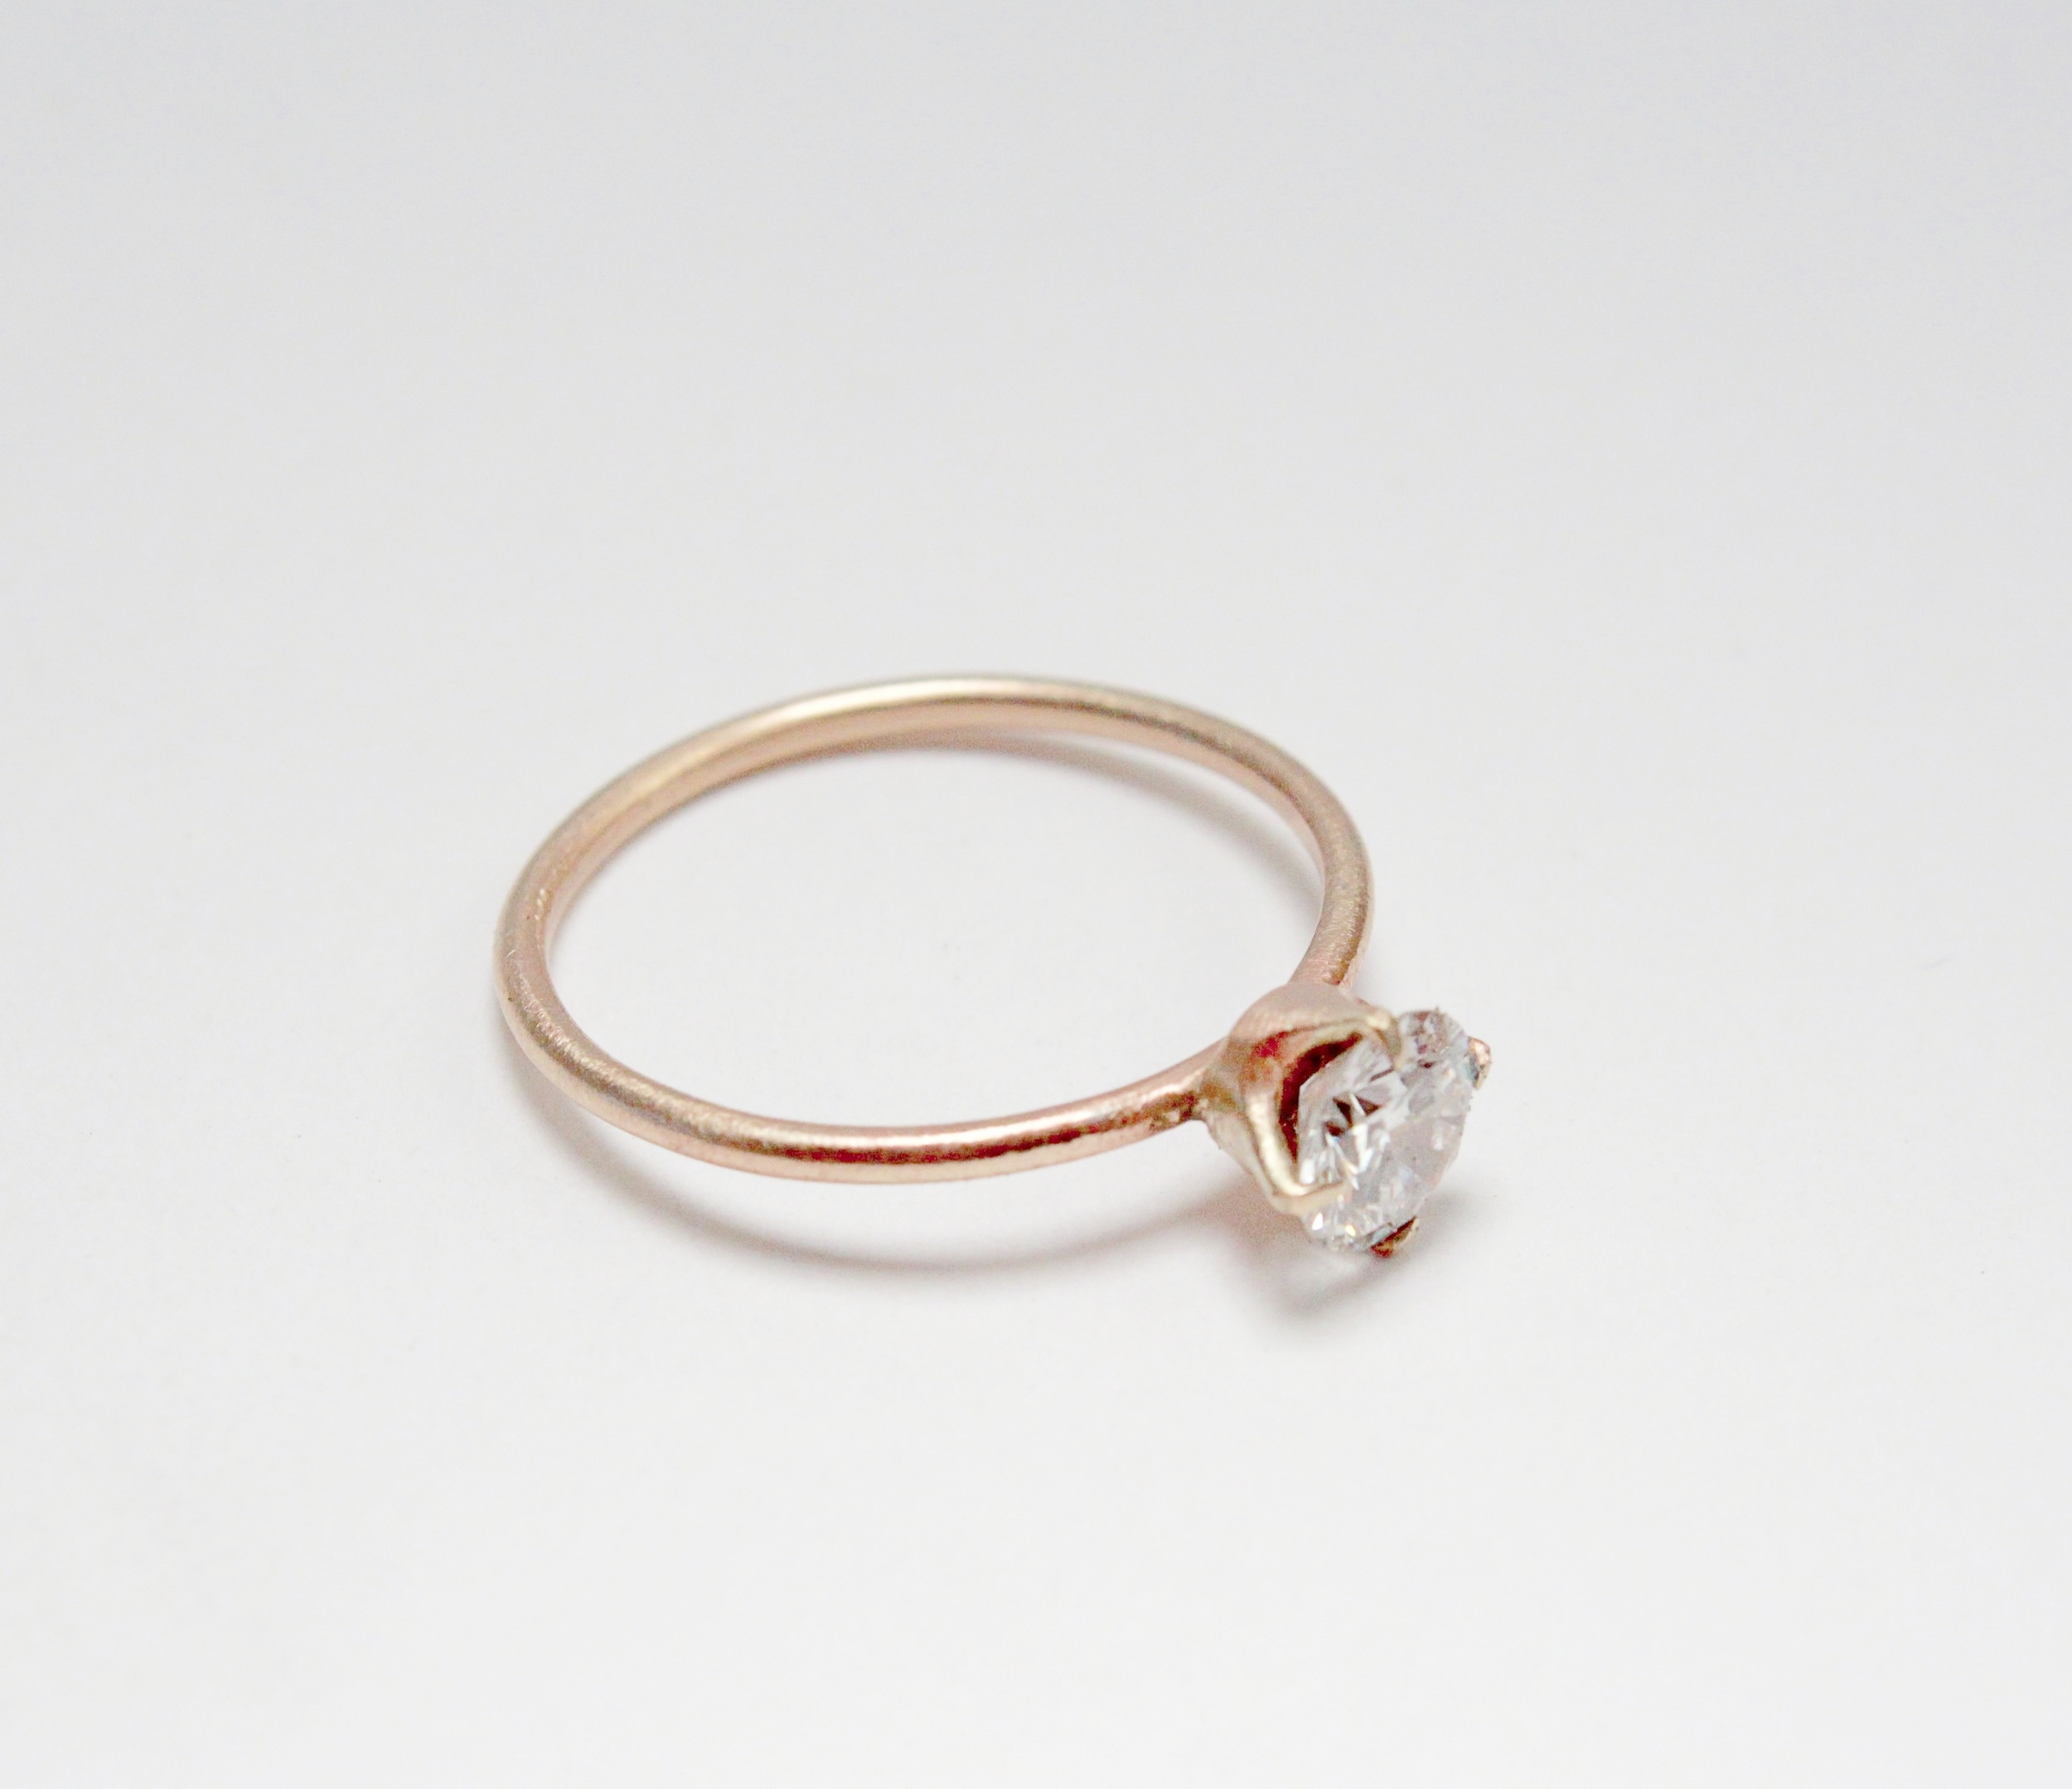 Paige's Simple Engagement Ring